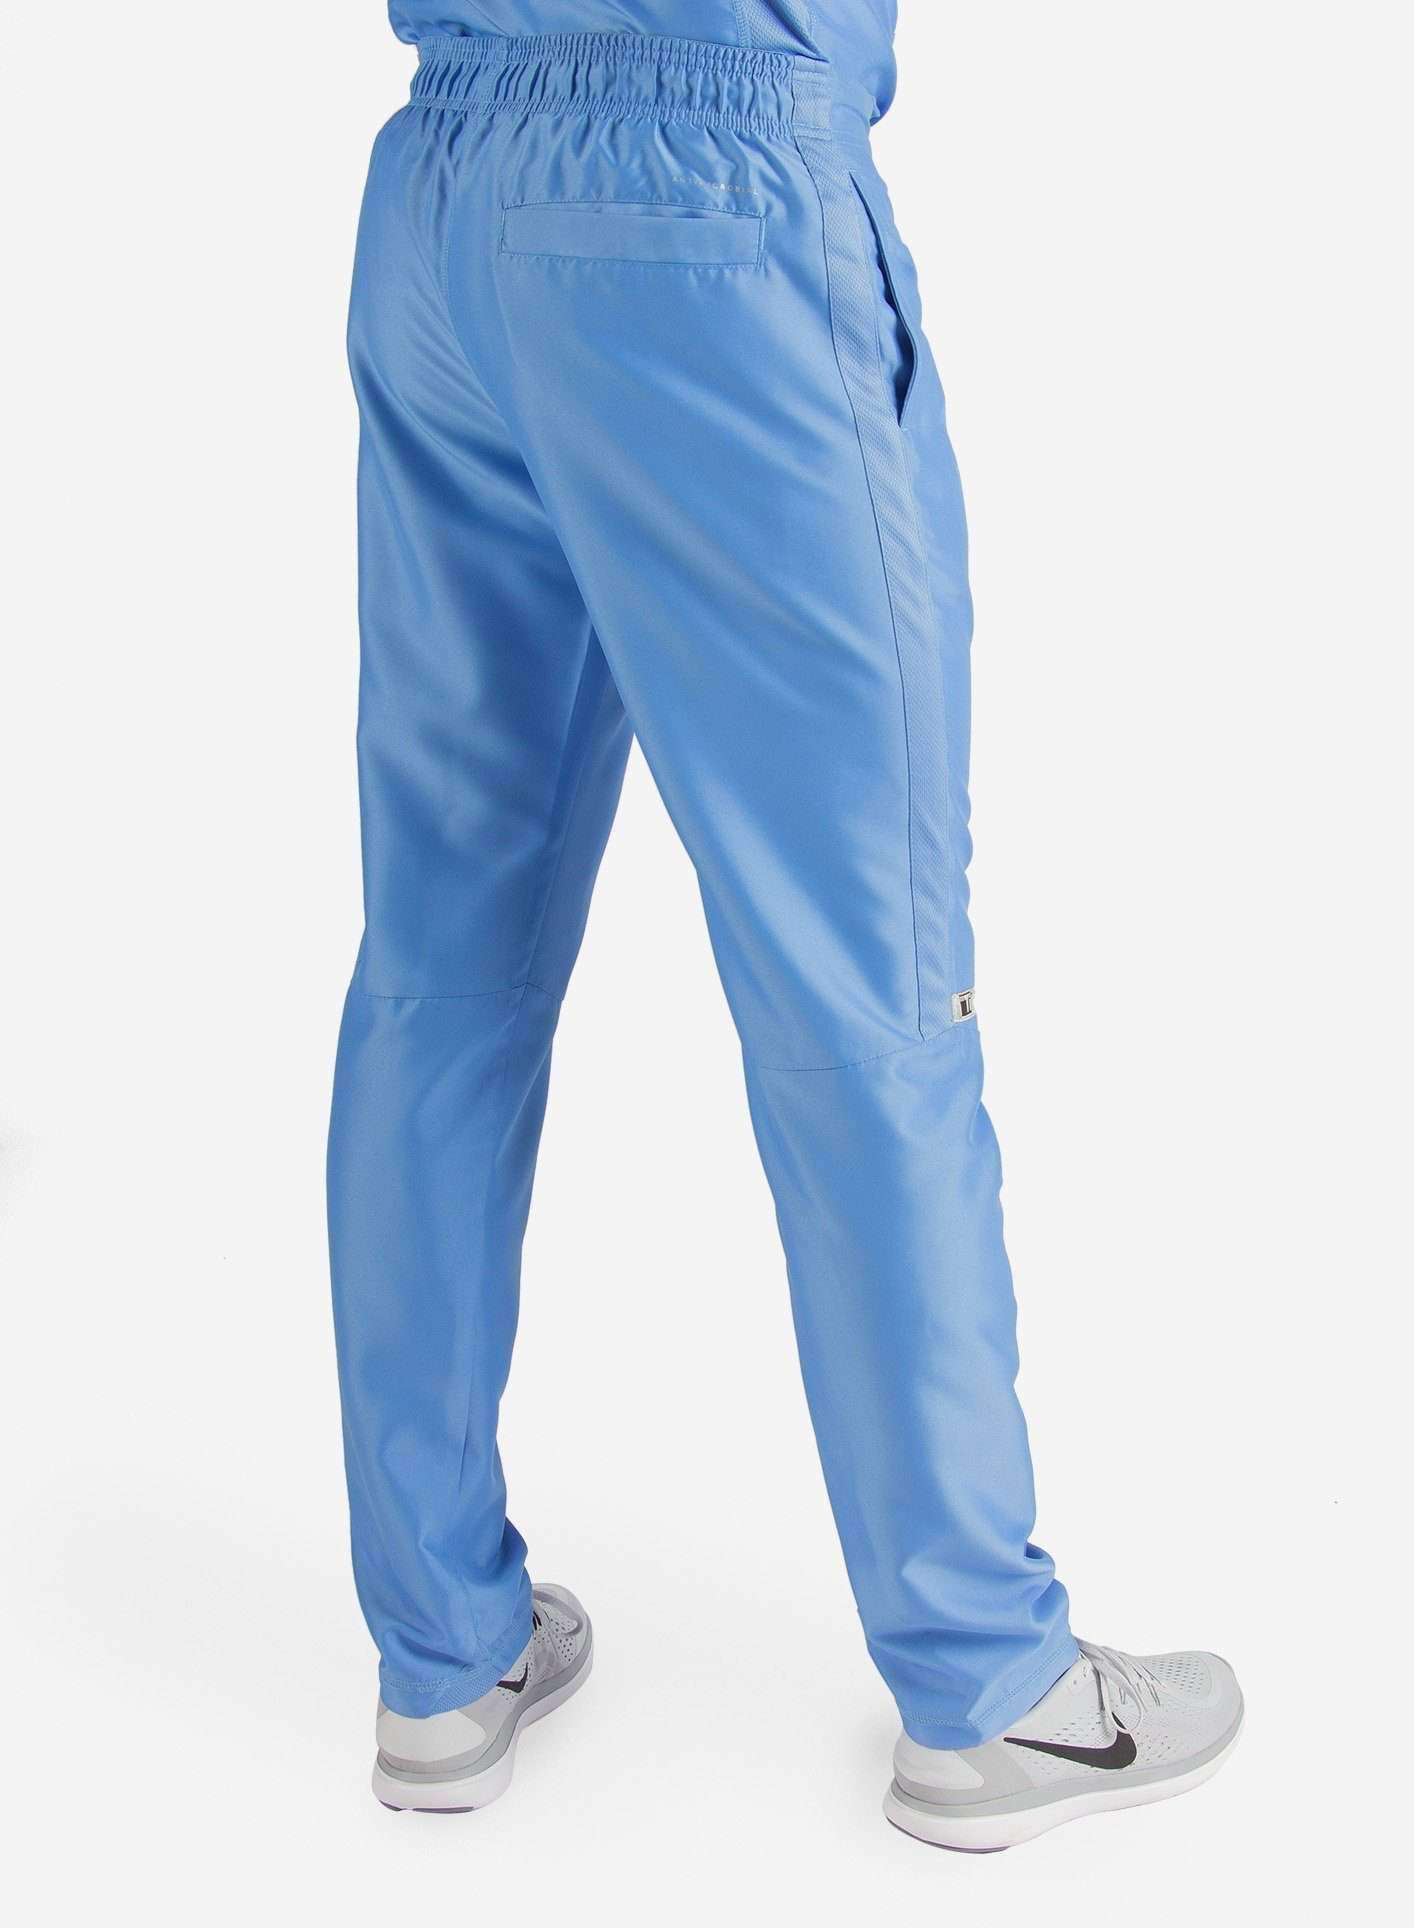 Men's Slim Fit Scrub Pants in Ceil Blue Back View